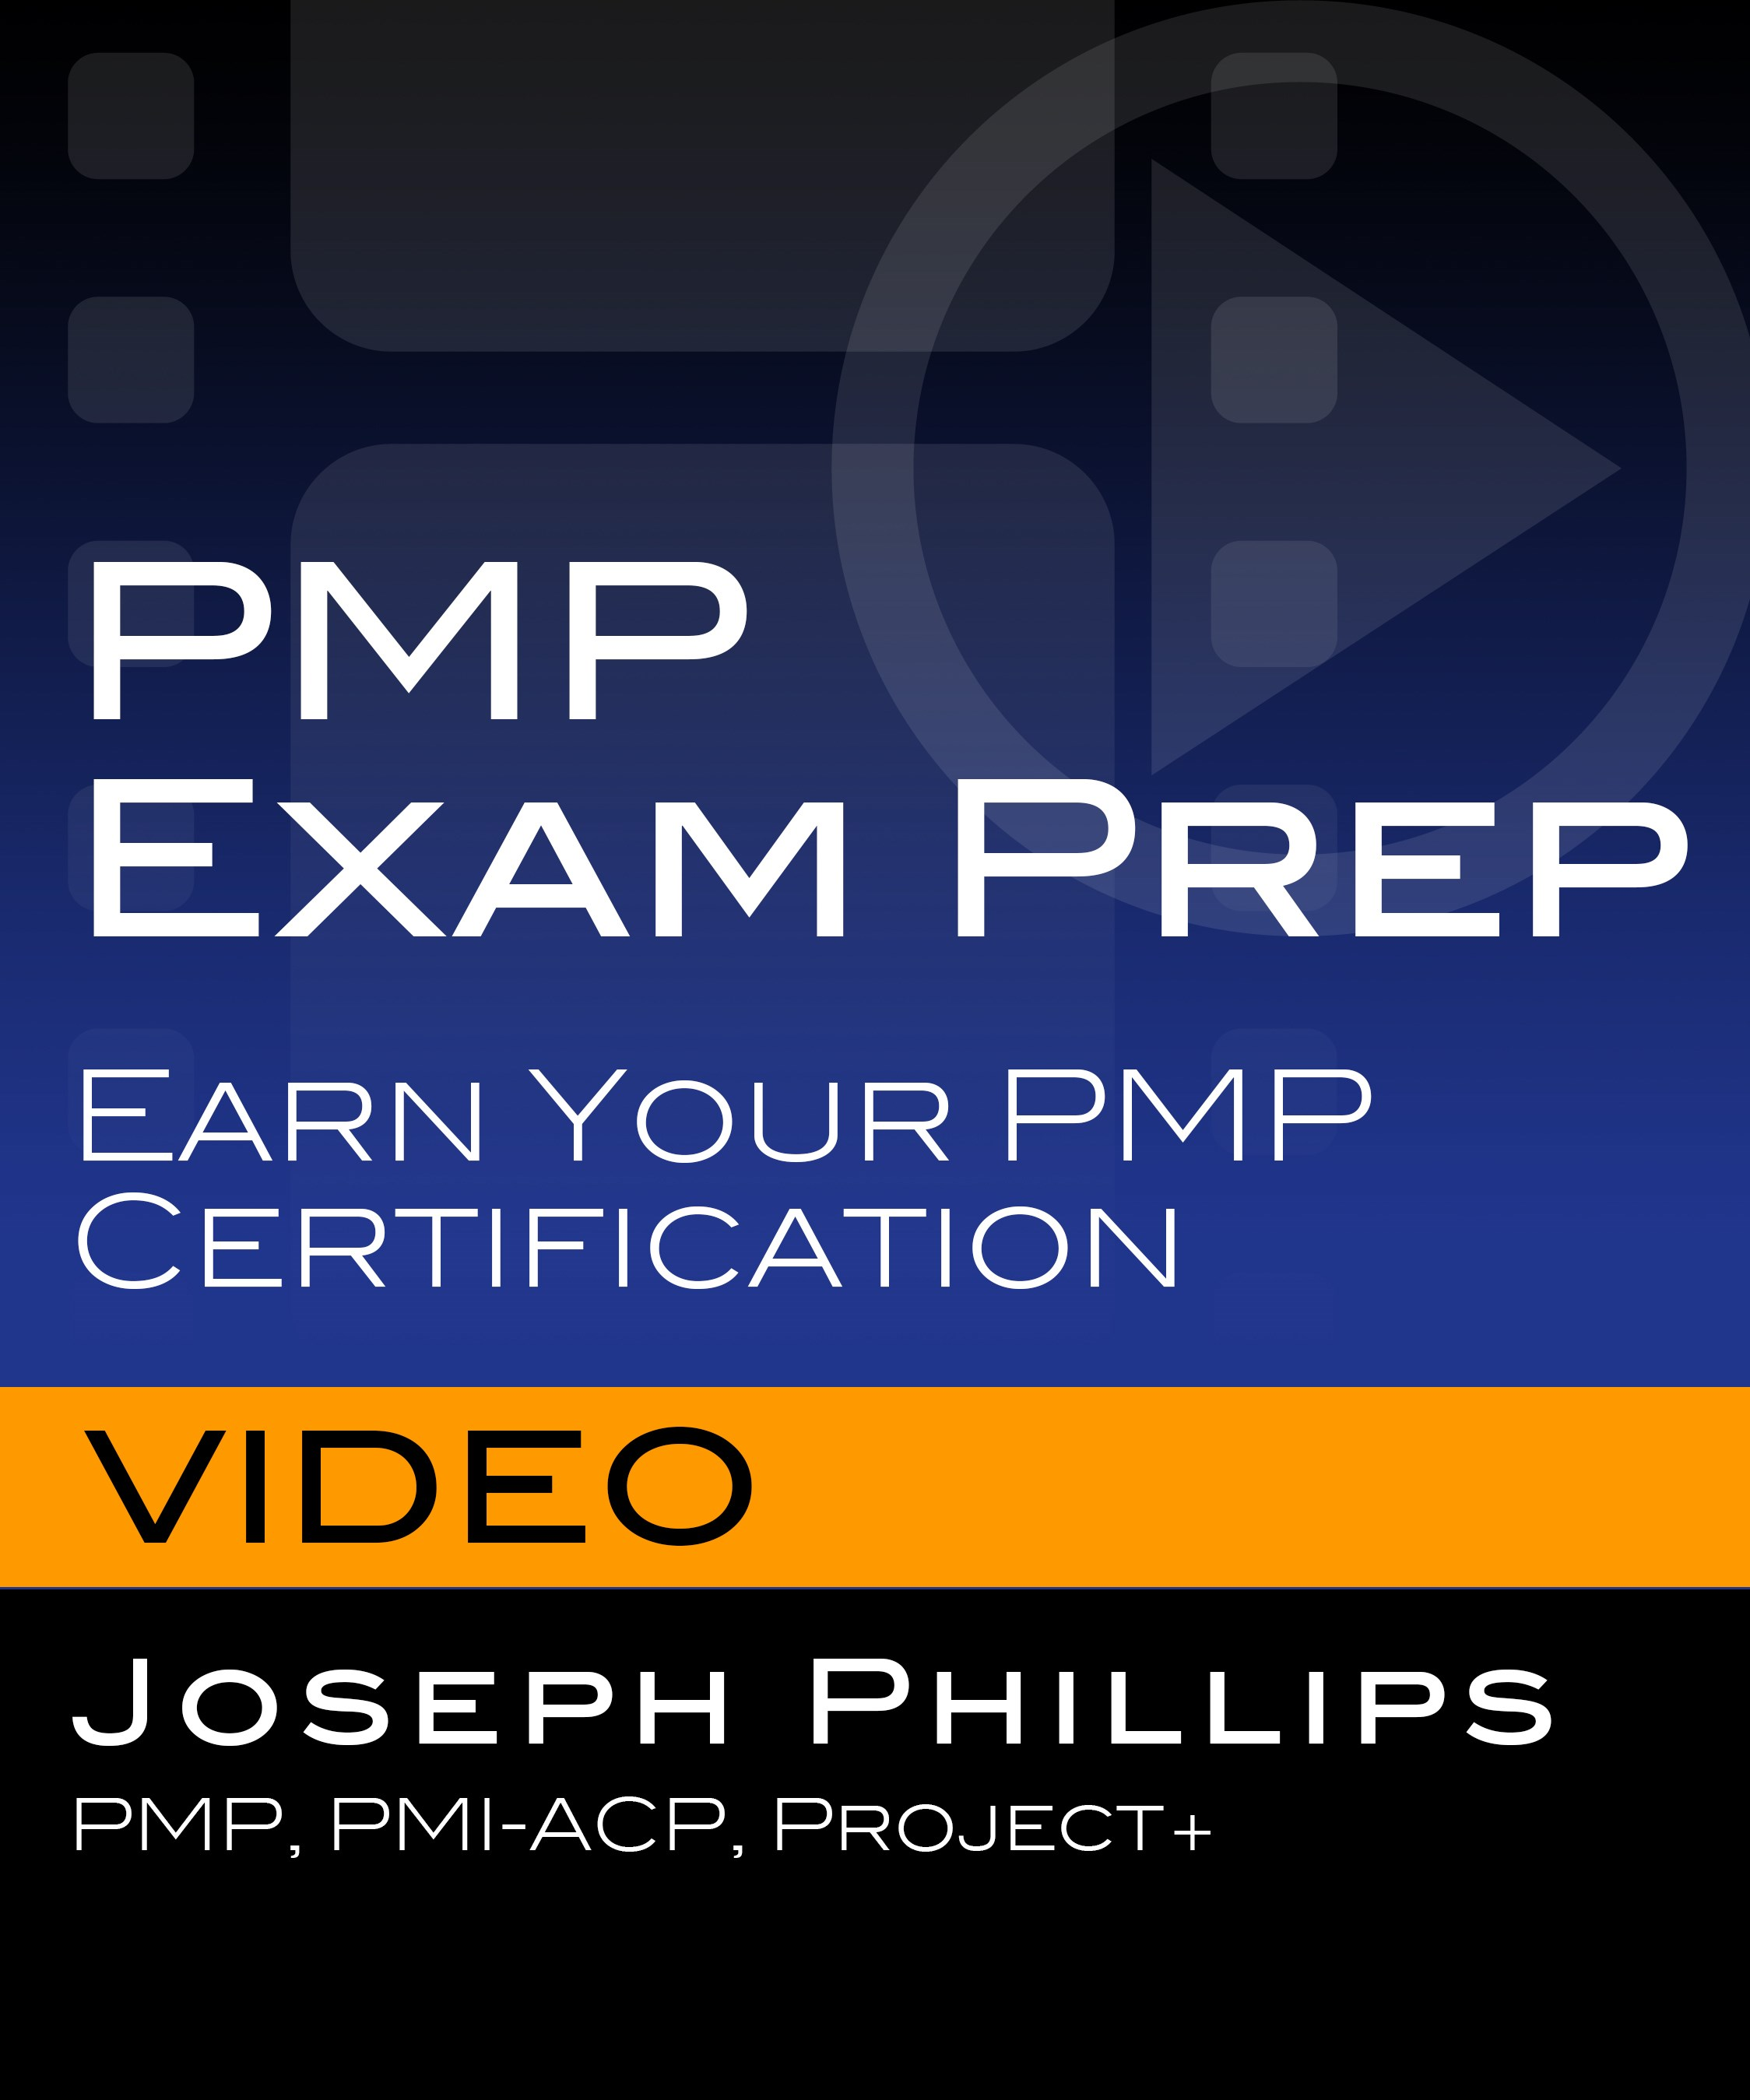 PMP Exam Prep: Earn Your PMP Certification